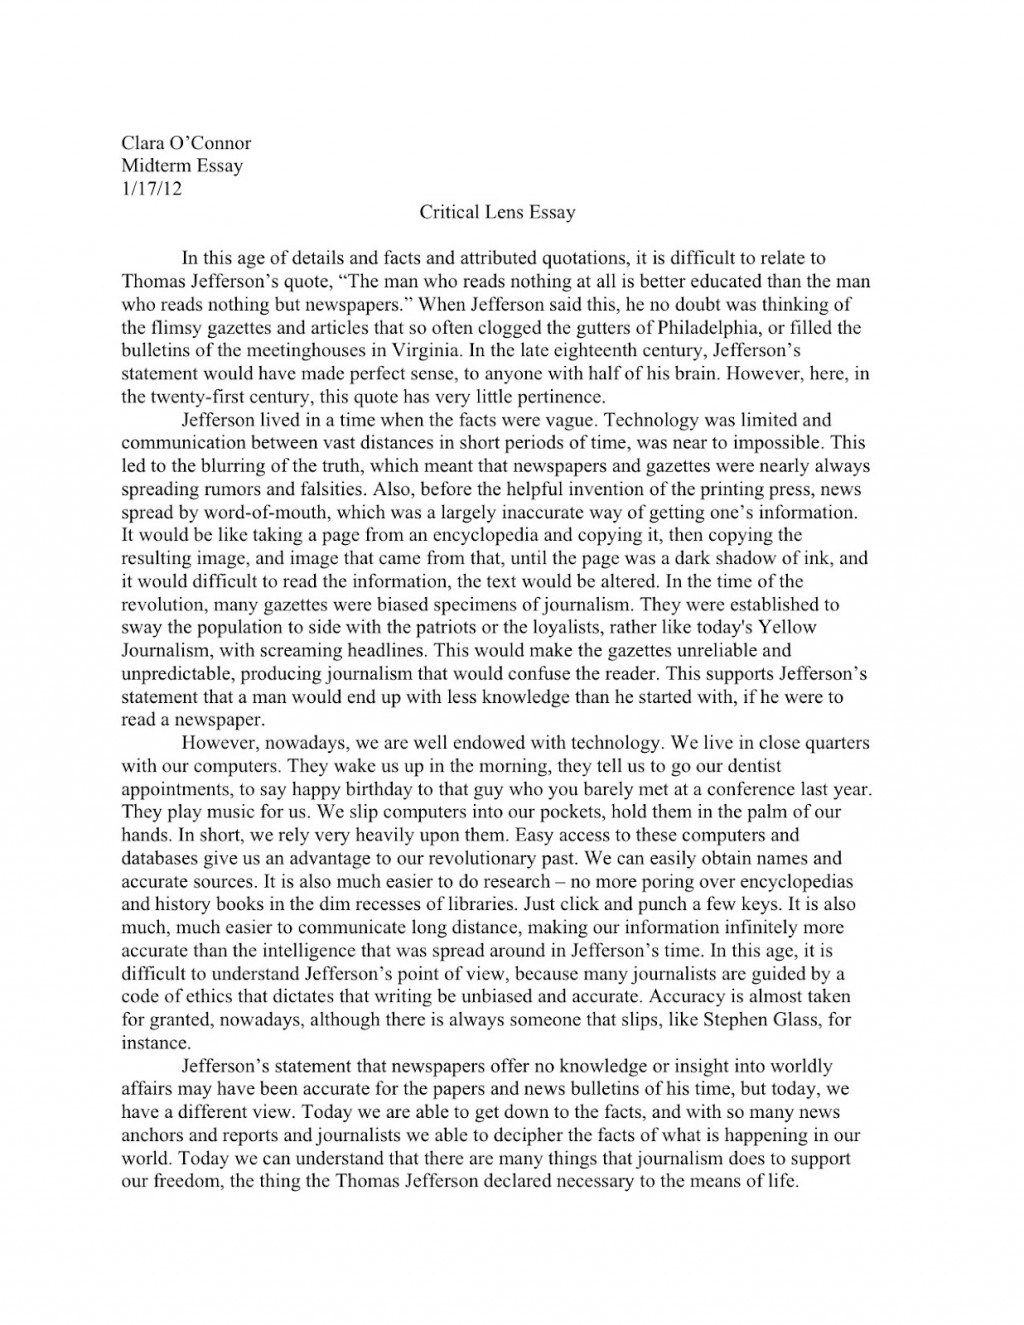 020 Essay Example Cwcriticallensessay Wondrous Character Introduction Lord Of The Flies Plans Sketch Rubric Large